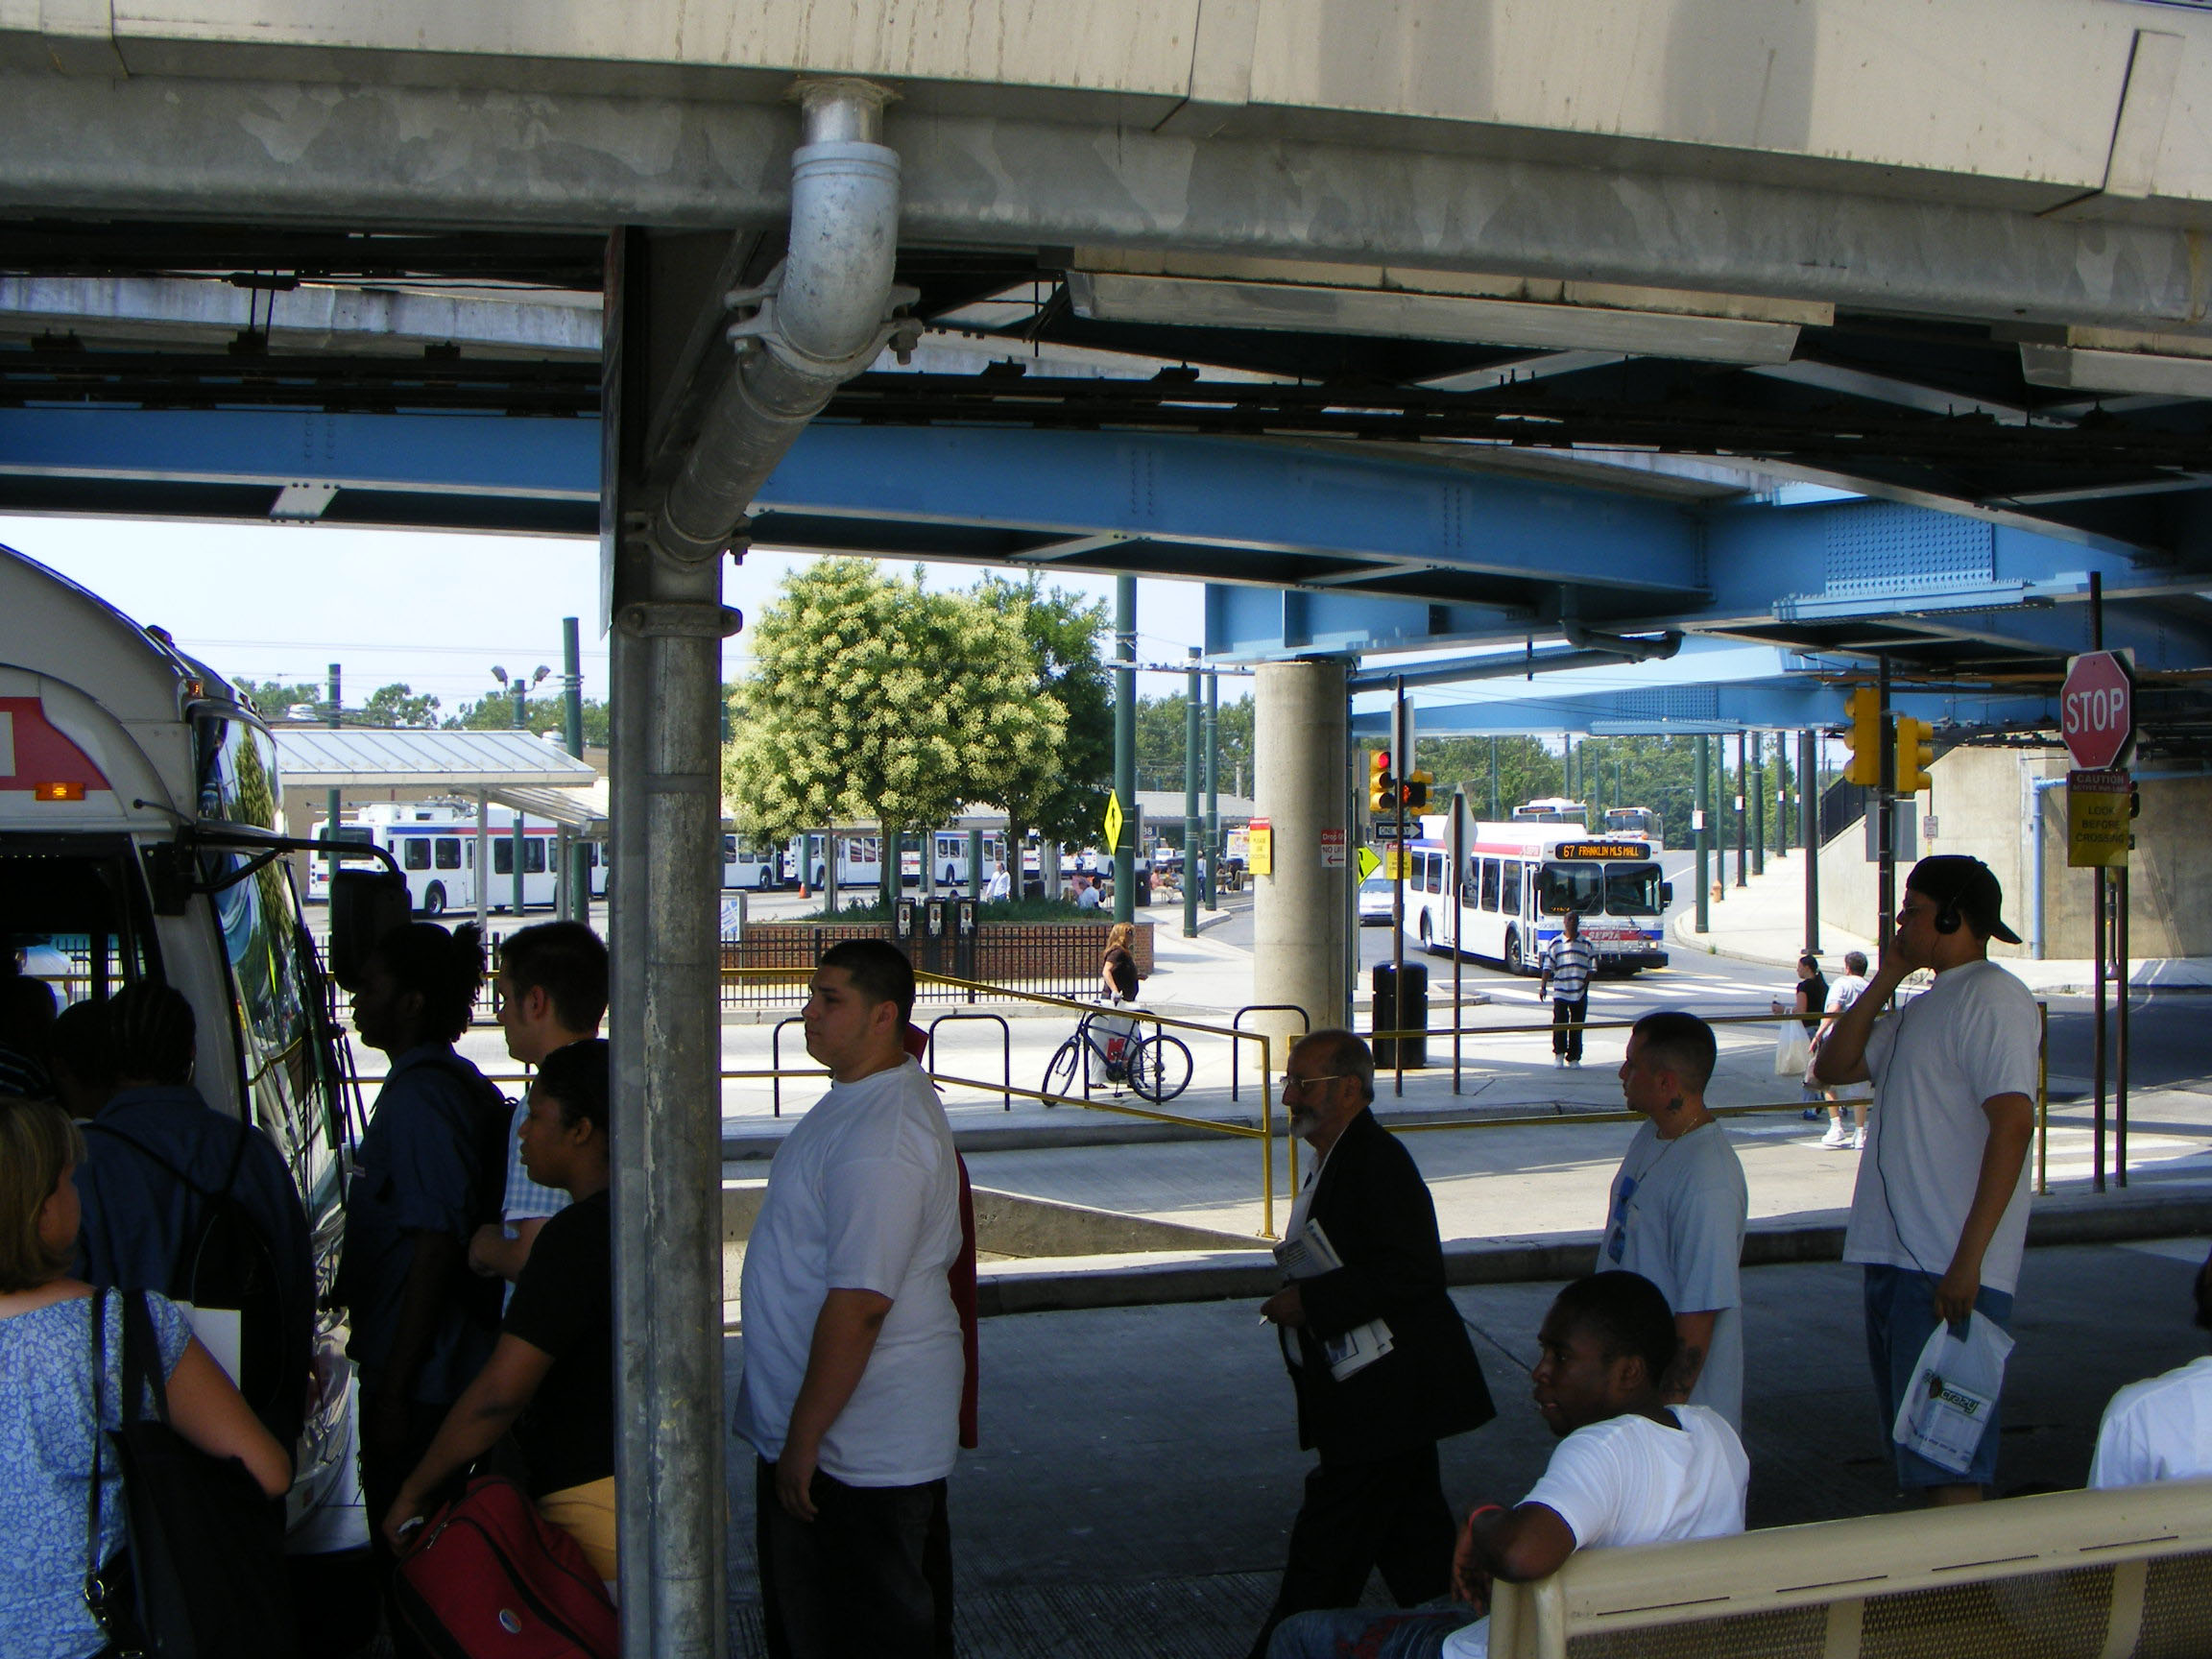 Frankford Tramsportation Center Bus Station